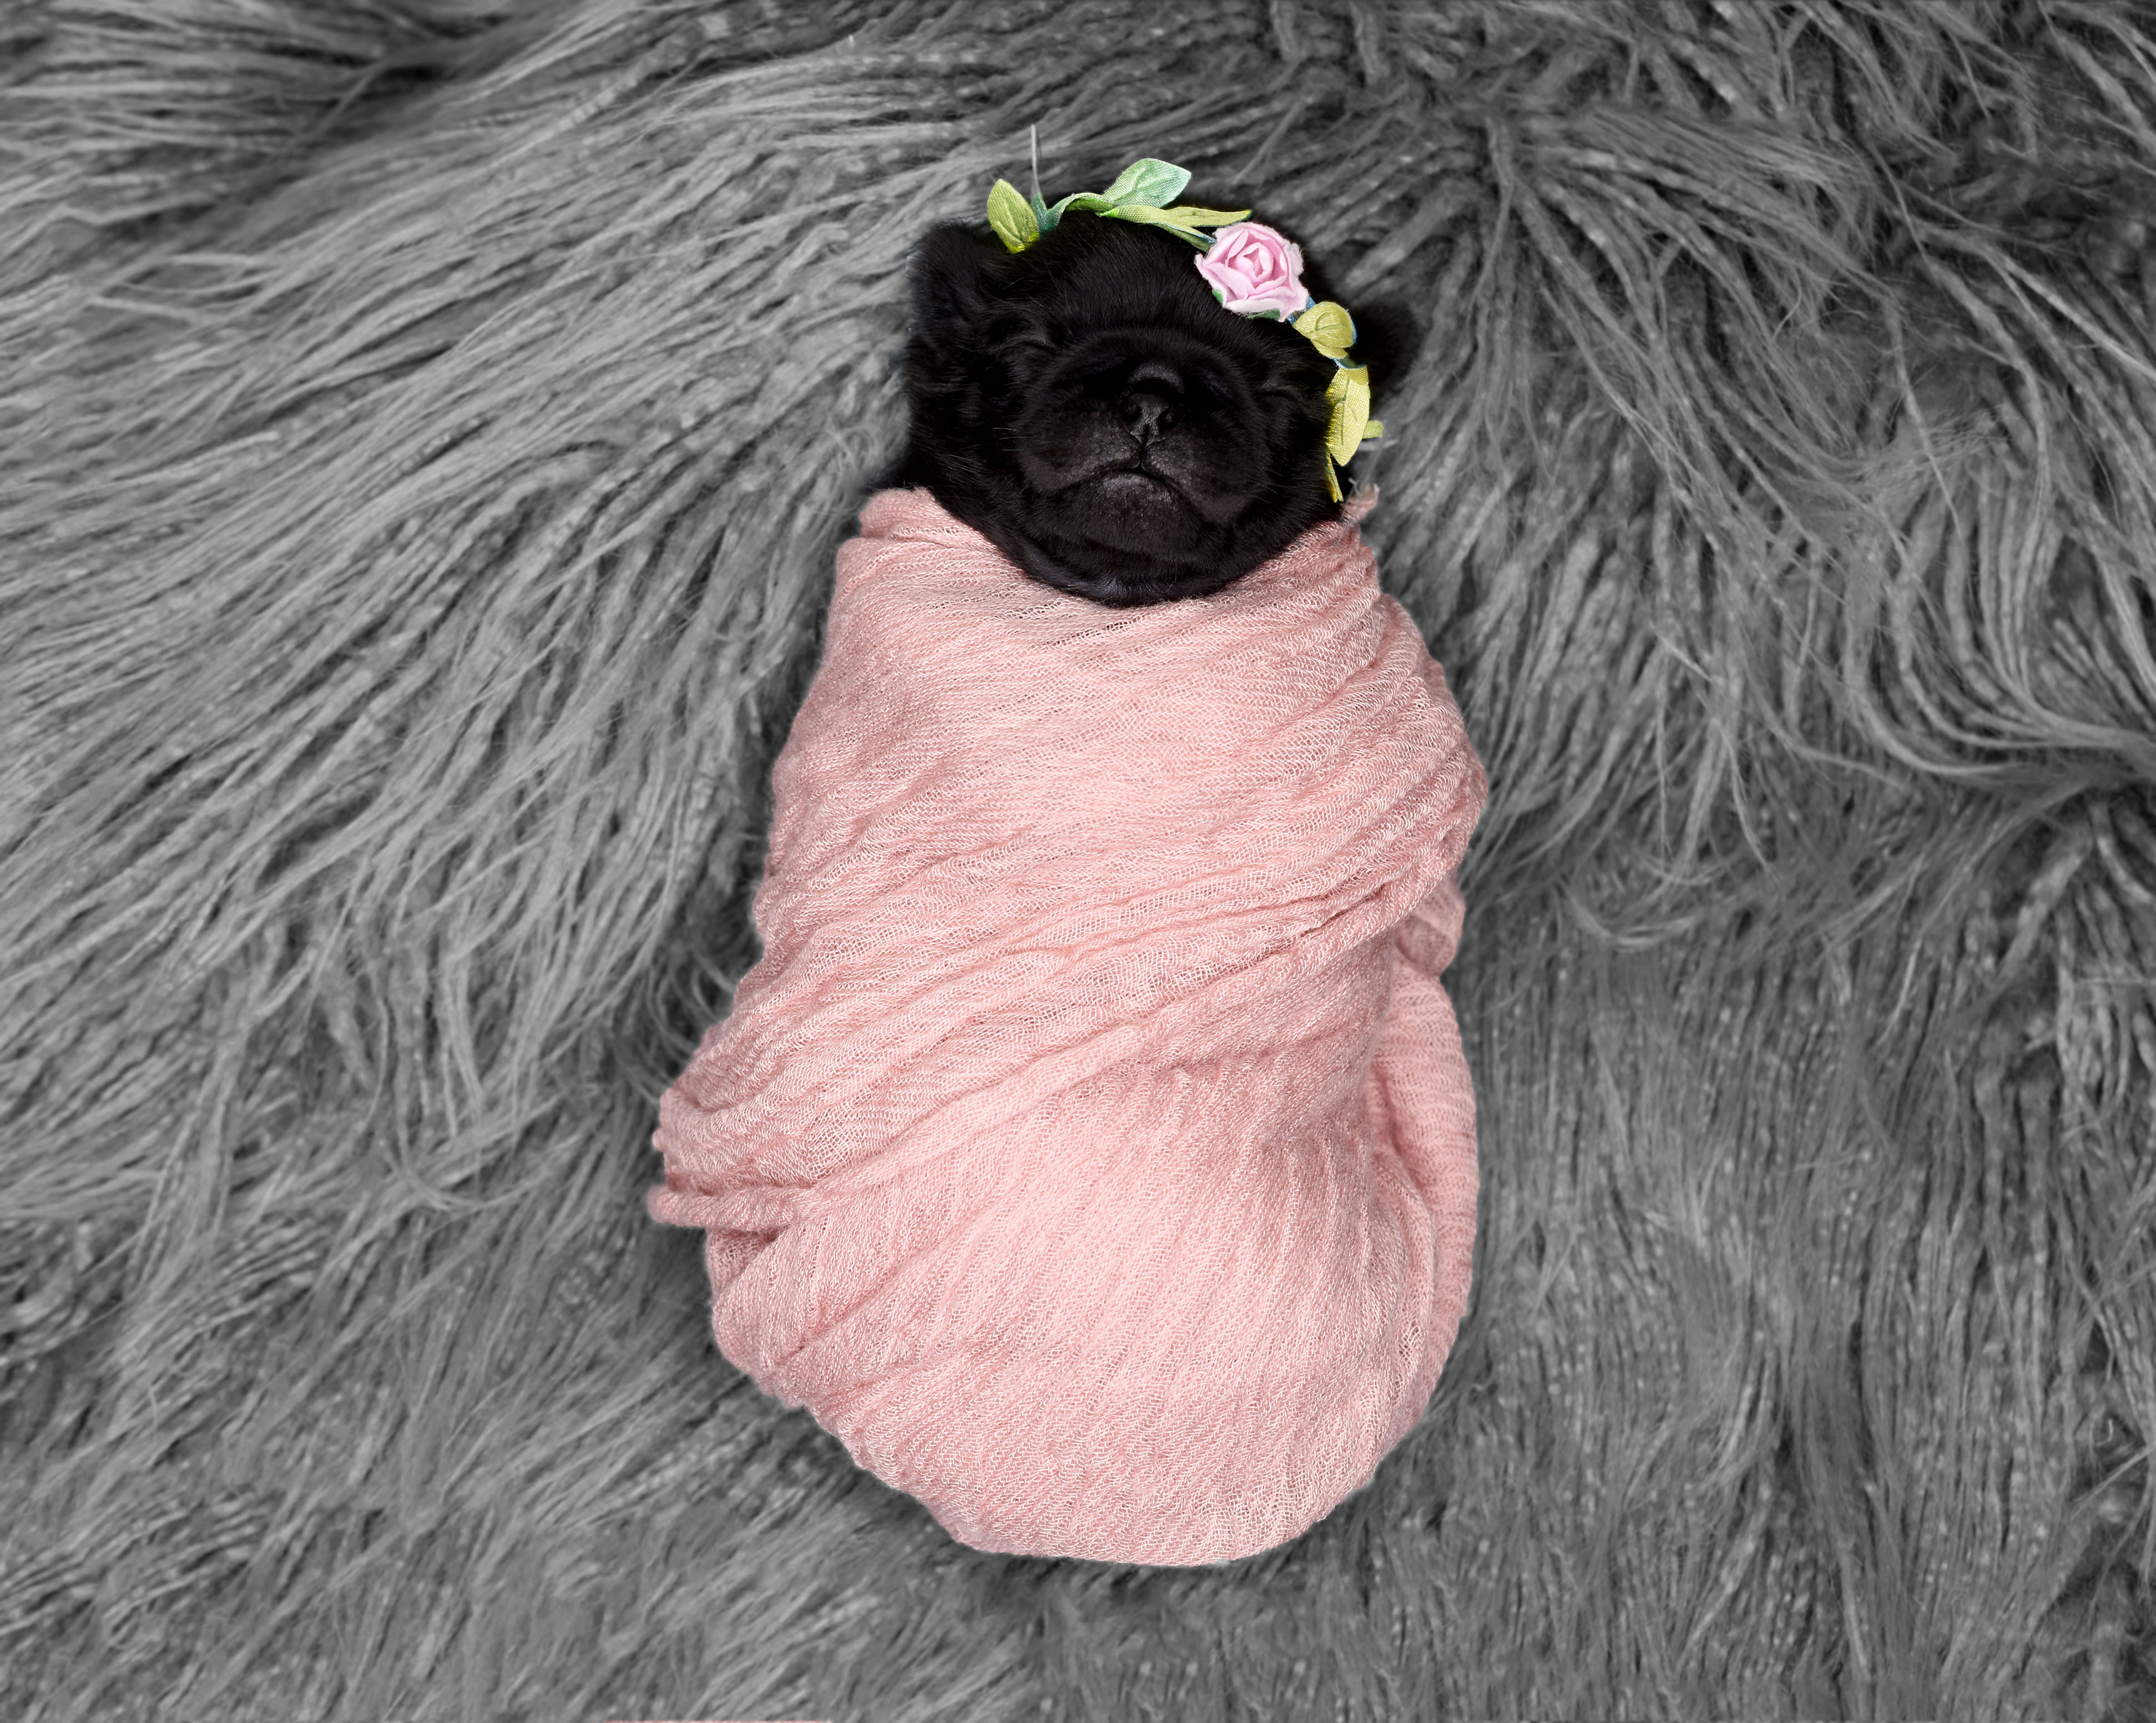 Proud owner documents pooch's pug-nancy with hilarious